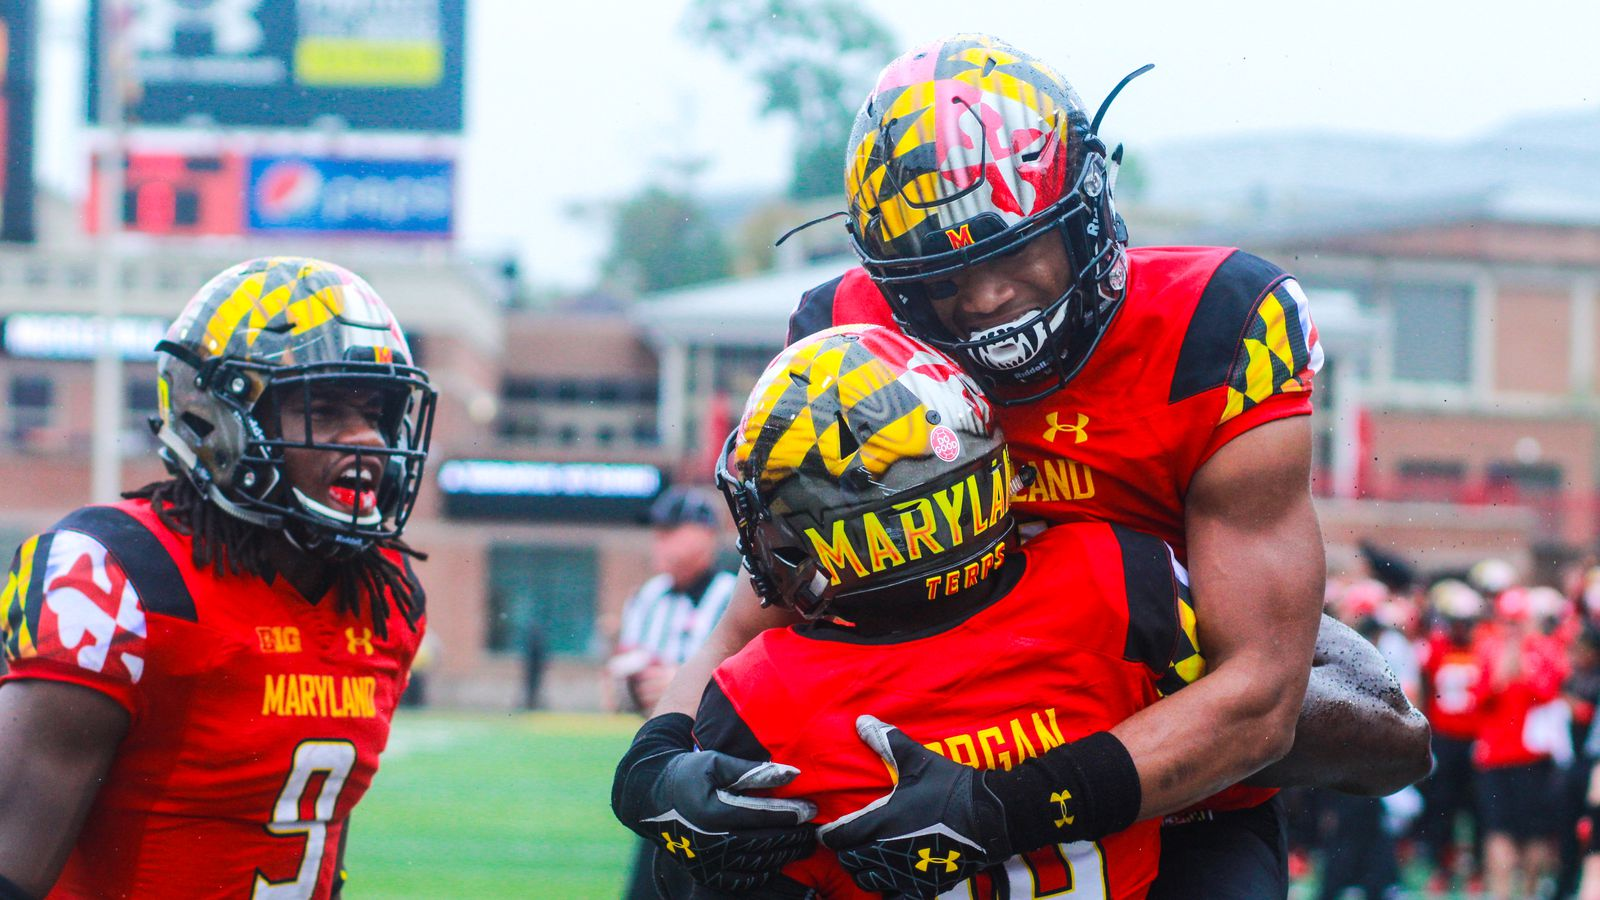 Pin By Md Minhajul Mamun On Soccer Players: Maryland Football Vs. Minnesota: Game Time, TV Schedule